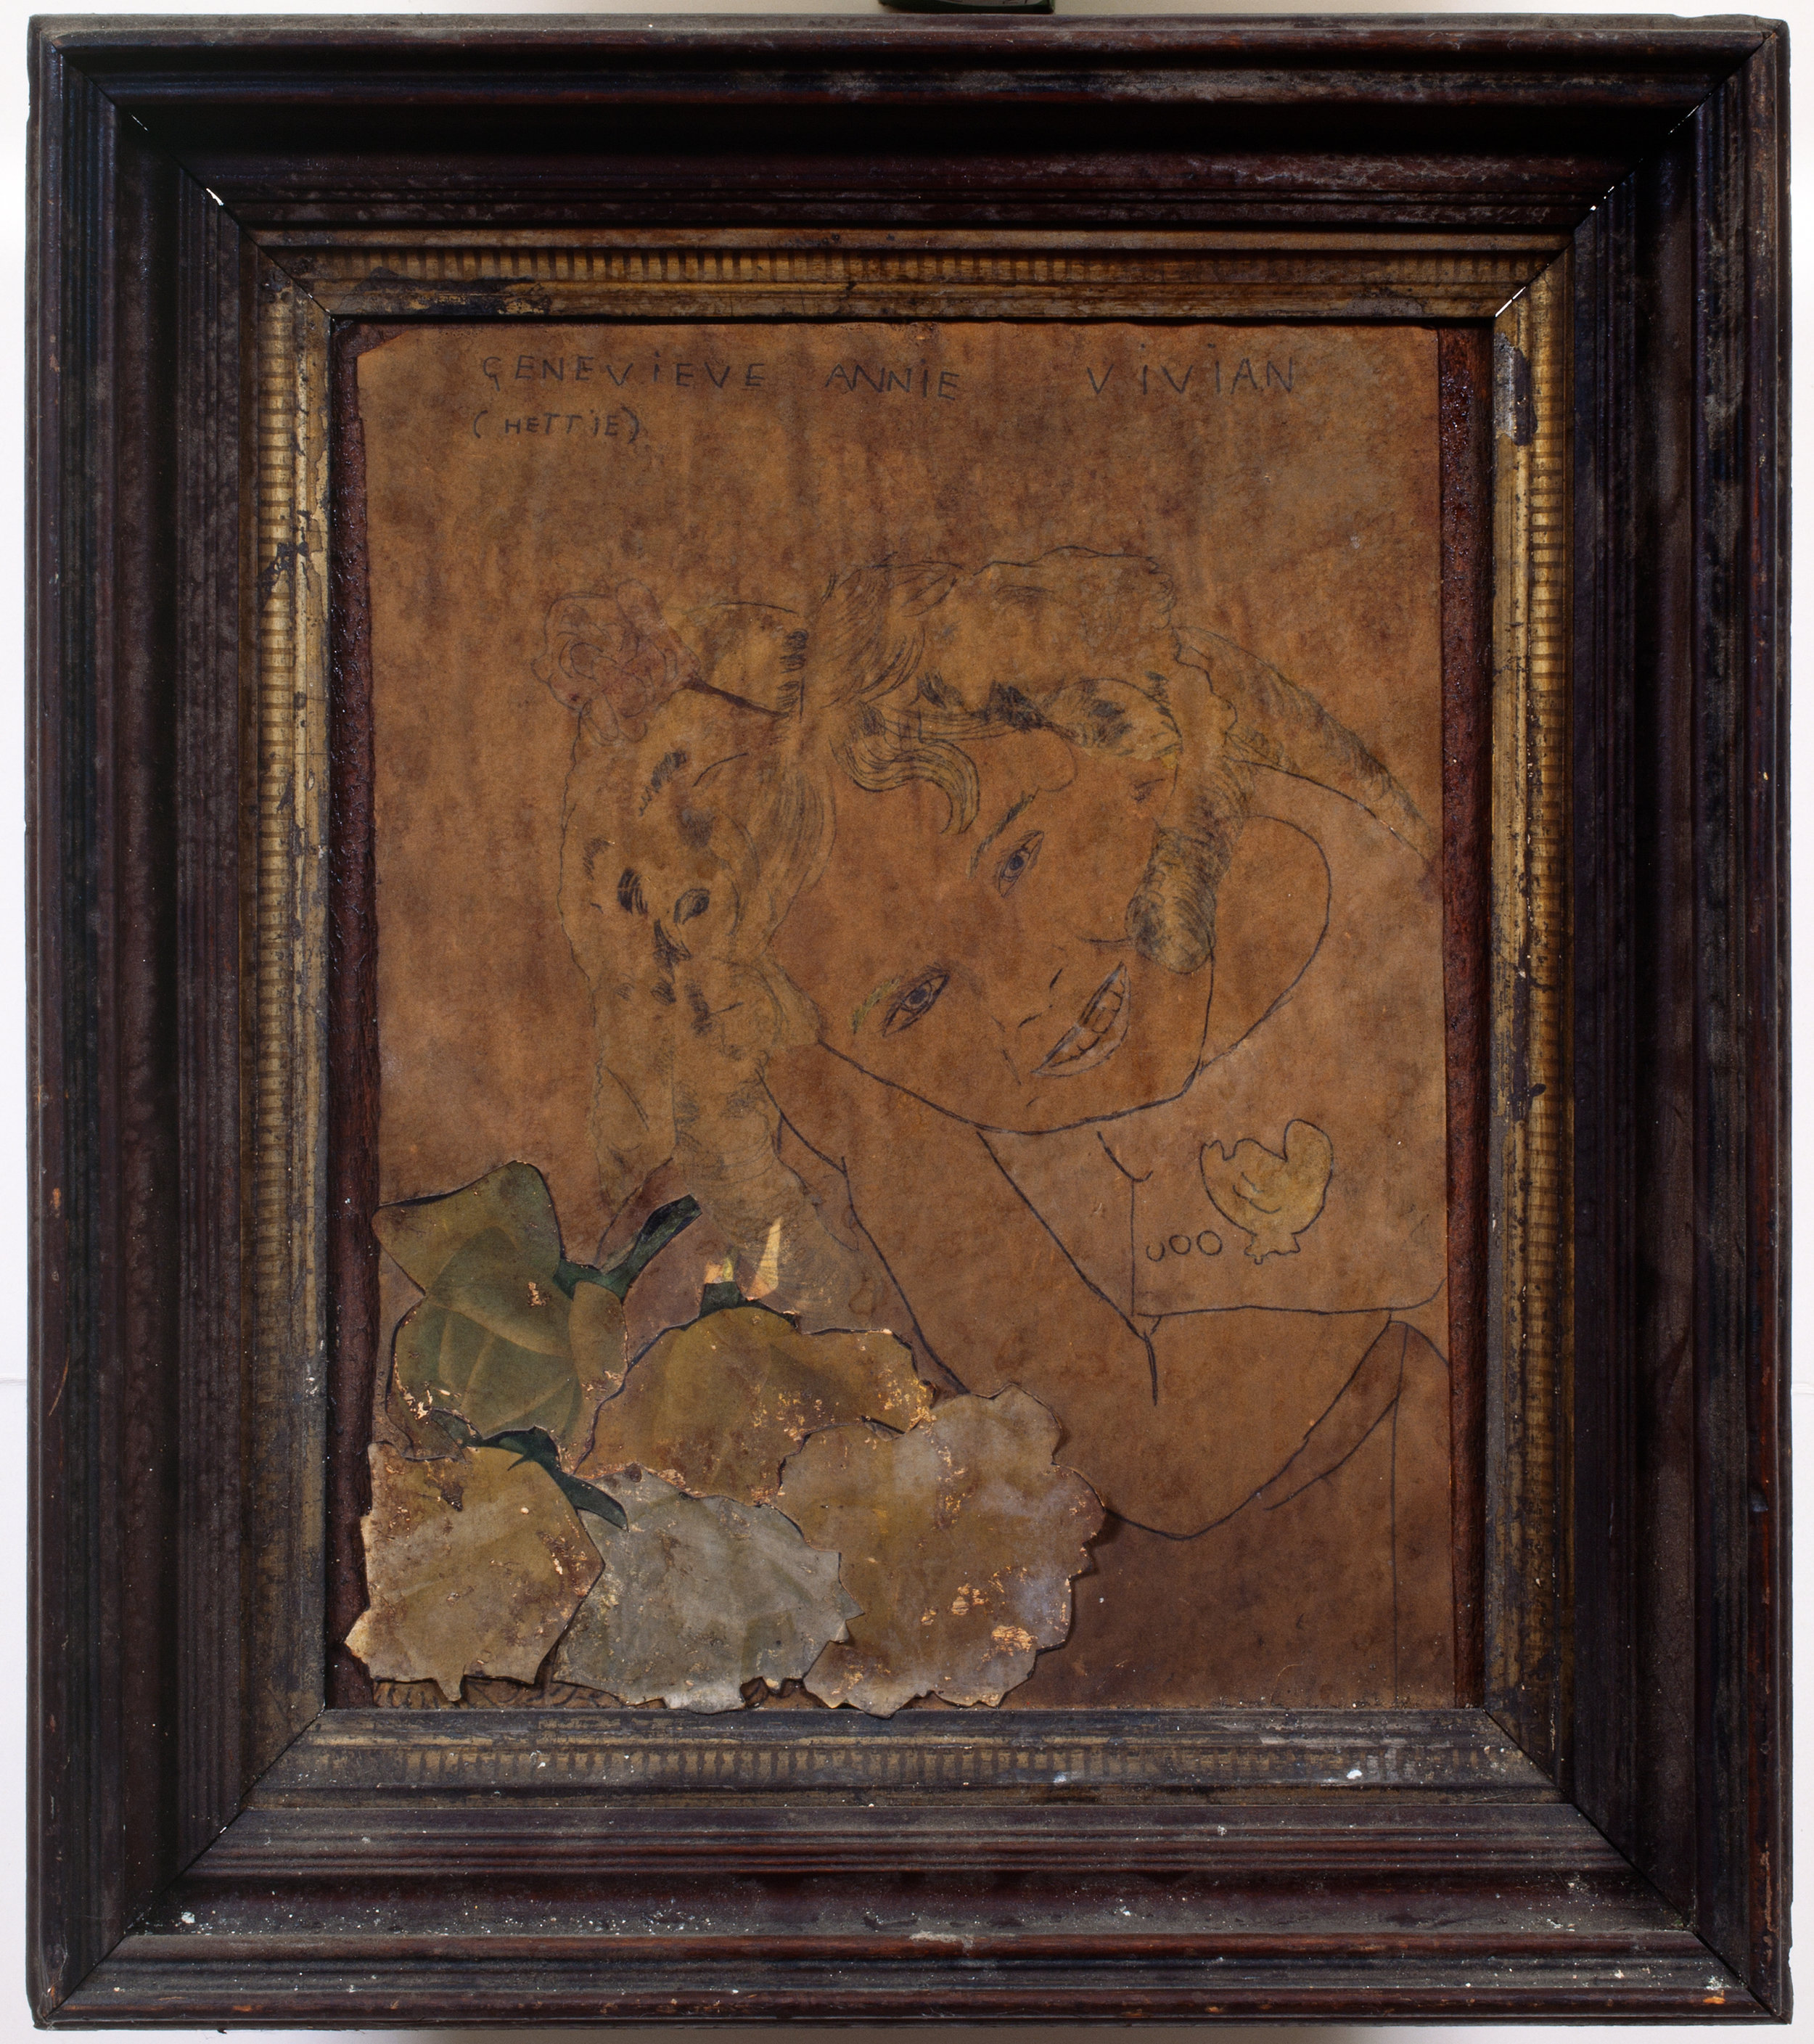 Henry Darger (American, 1892-1973). Genevieve Annie Vivian (Hettie), ca. 1940s. Mixed media on paper, 16 x 14 in. (framed). Photo by John Faier. Collection of Robert A. Roth